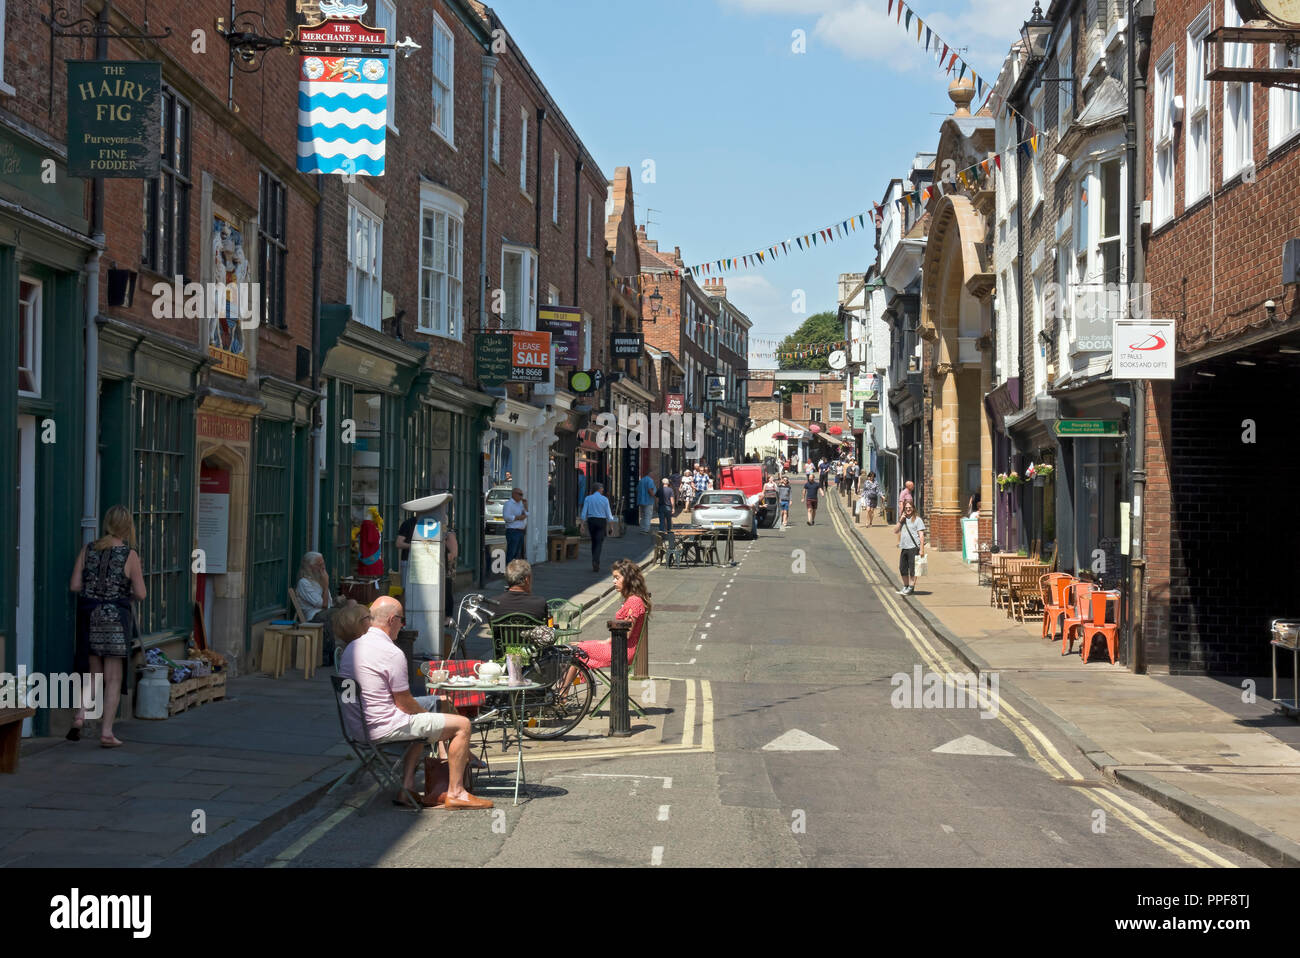 Cafes and shops in summer Fossgate York North Yorkshire England UK United Kingdom GB Great Britain - Stock Image